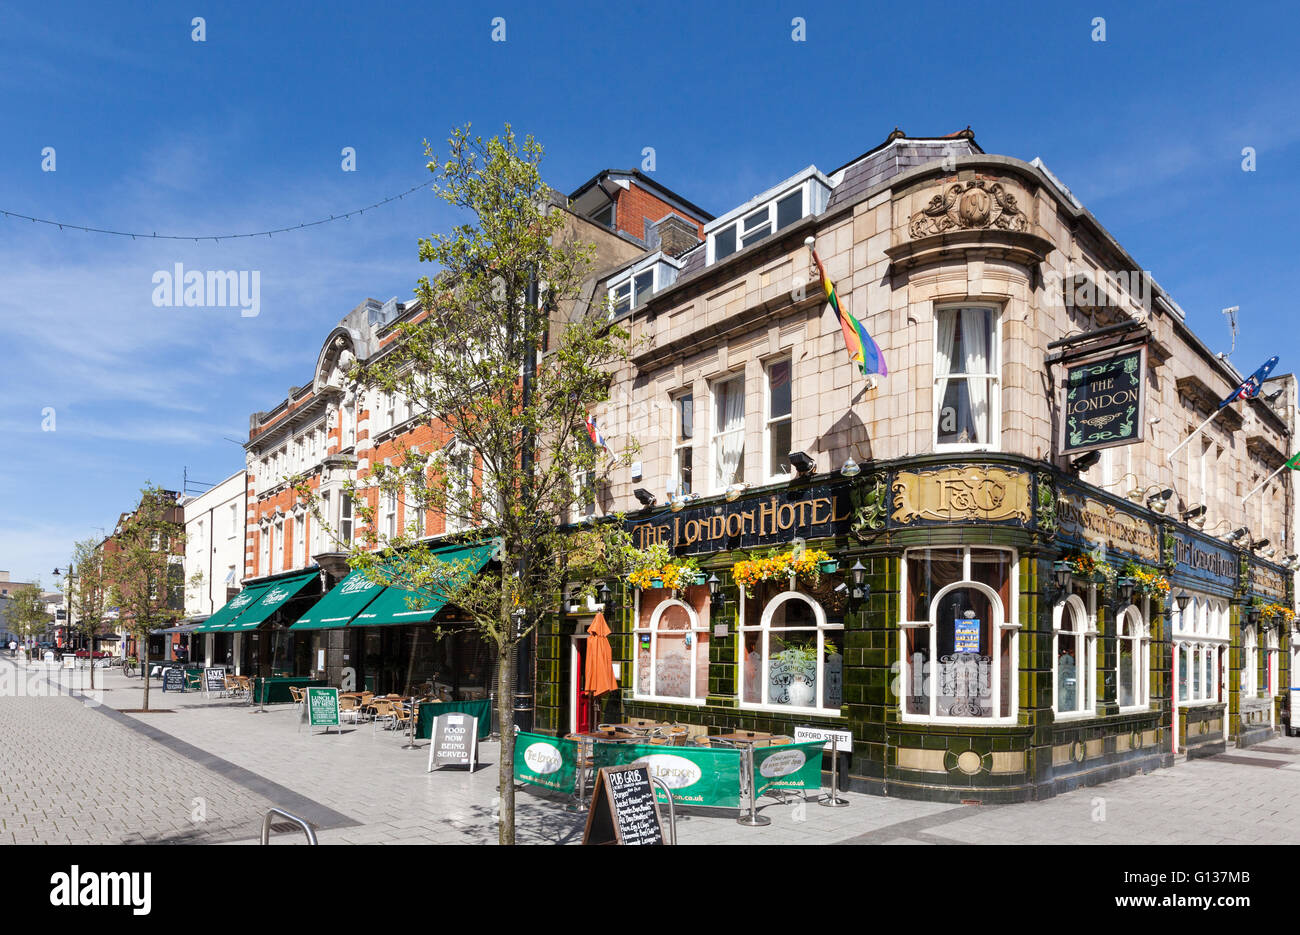 The London Hotel pub and Oxford Street in Southampton, Hampshire, UK - Stock Image